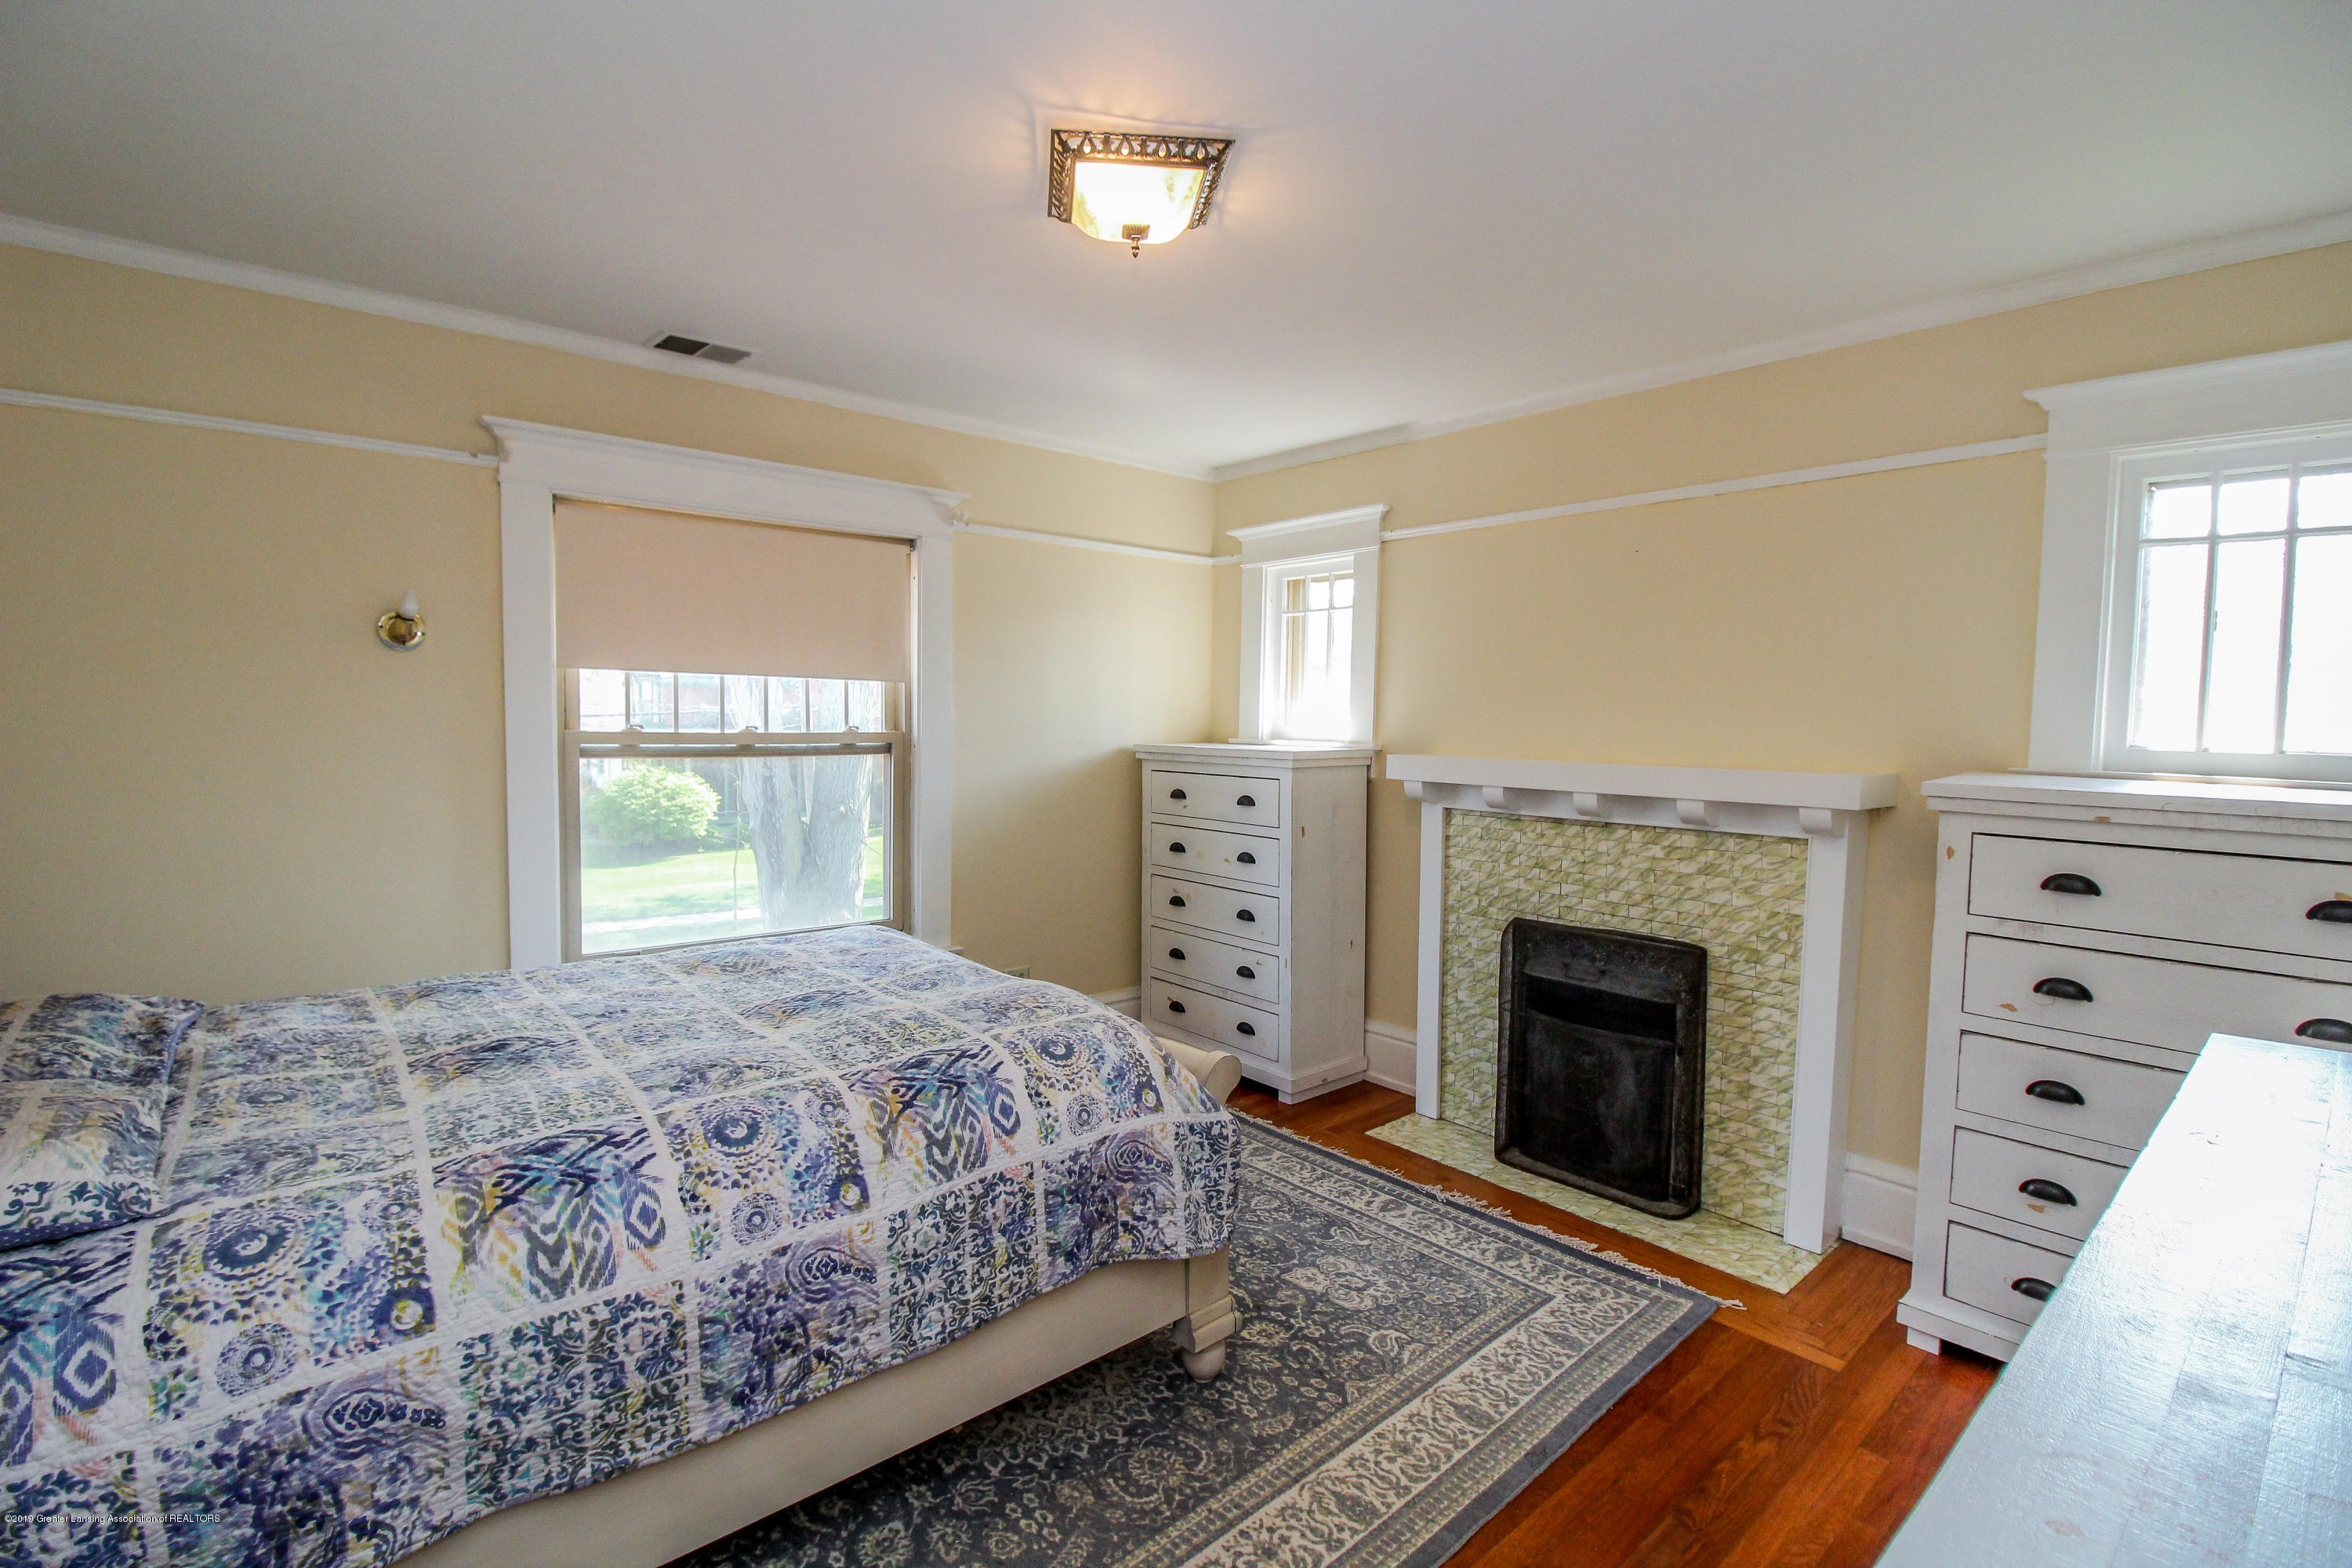 200 W Cass St - Bedroom - 39